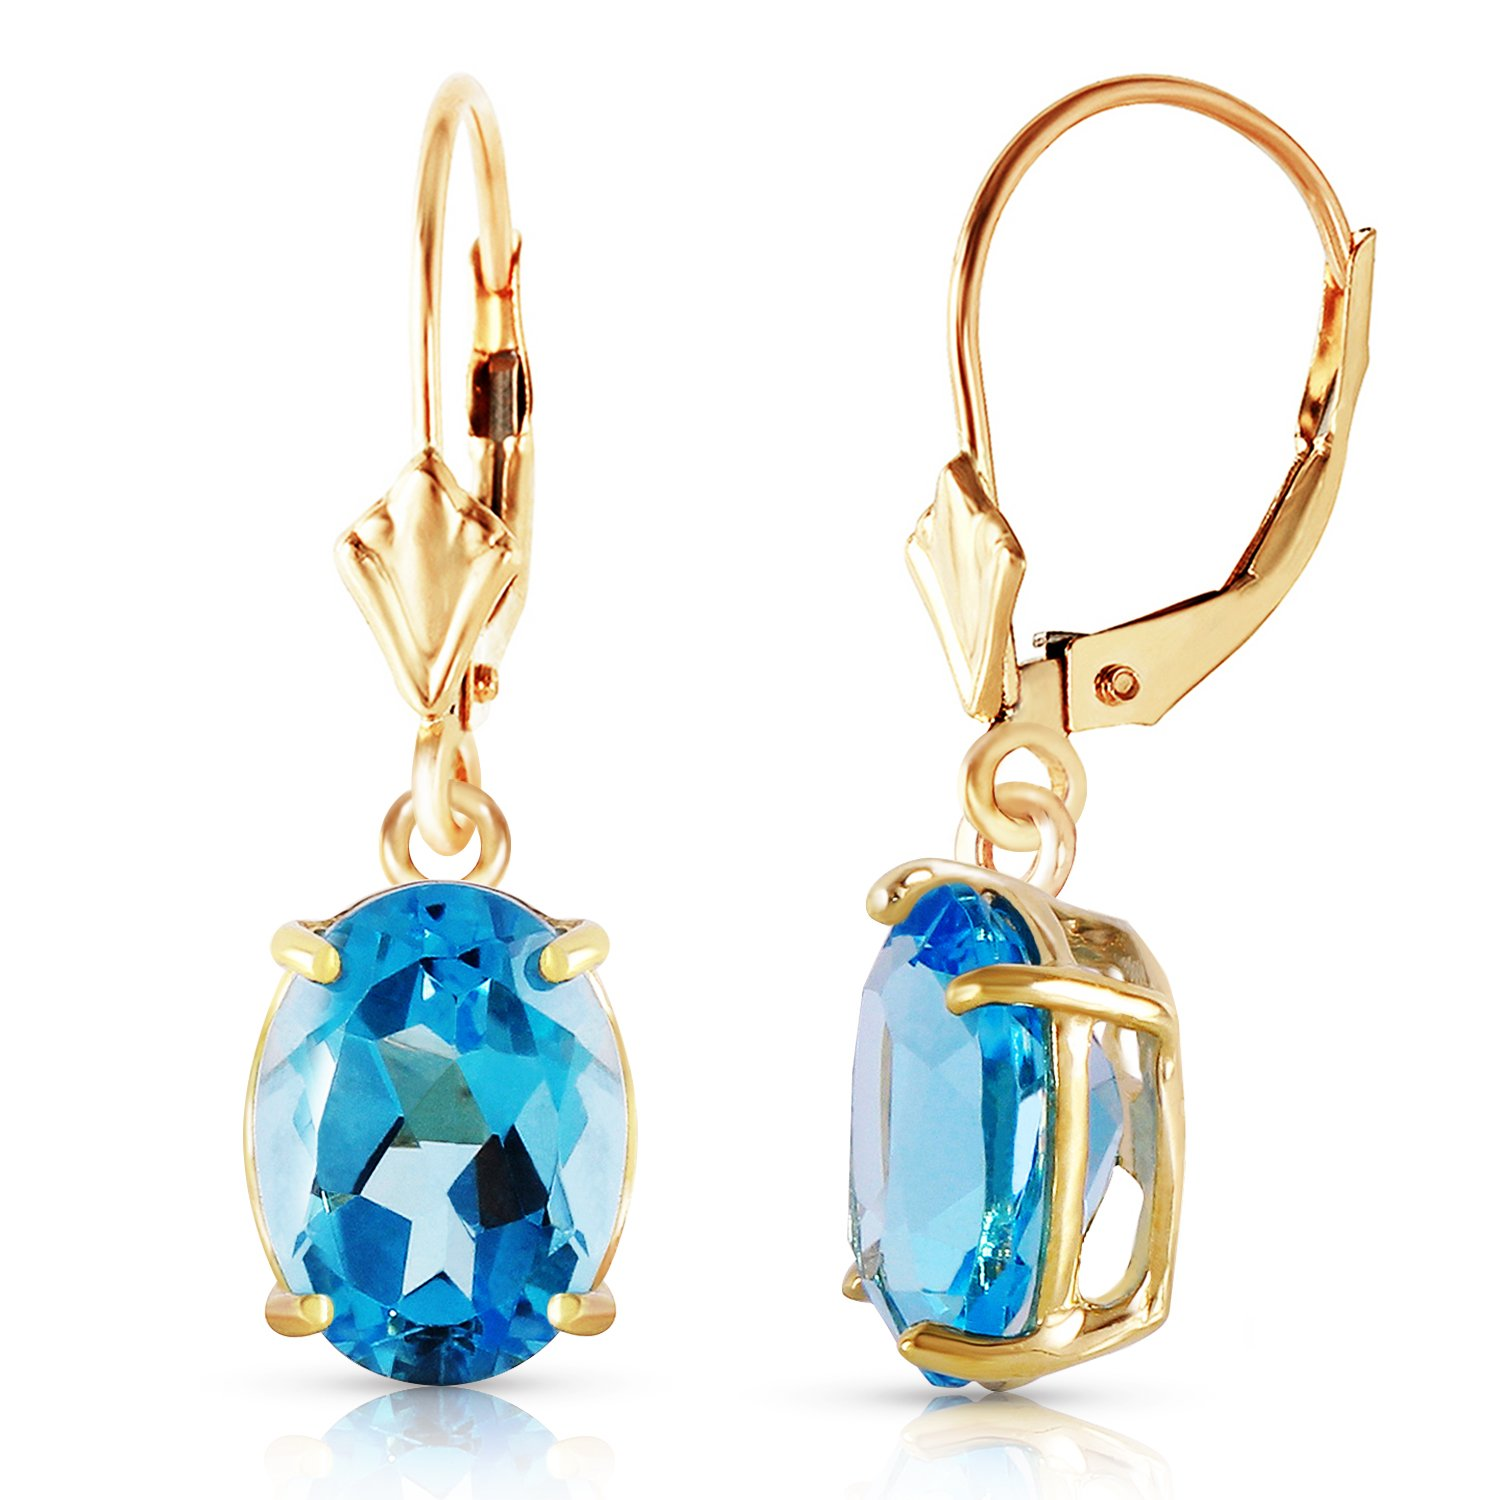 6.25 Carat 14k Solid Gold Dangling Blue Topaz Earrings